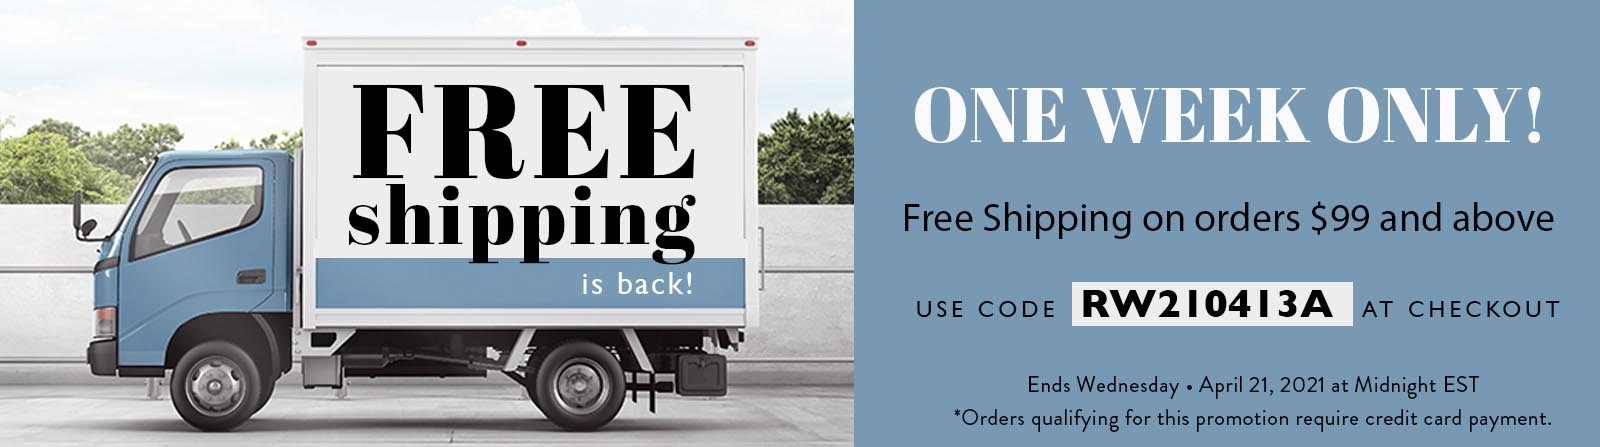 Free shipping is back. One week only! Free shipping on orders $99 and above. Use code RW210413A at checkout. Ends Wednesday April 21, 2021 at Midnight EST. Orders qualifying for this promotion require credit card payment